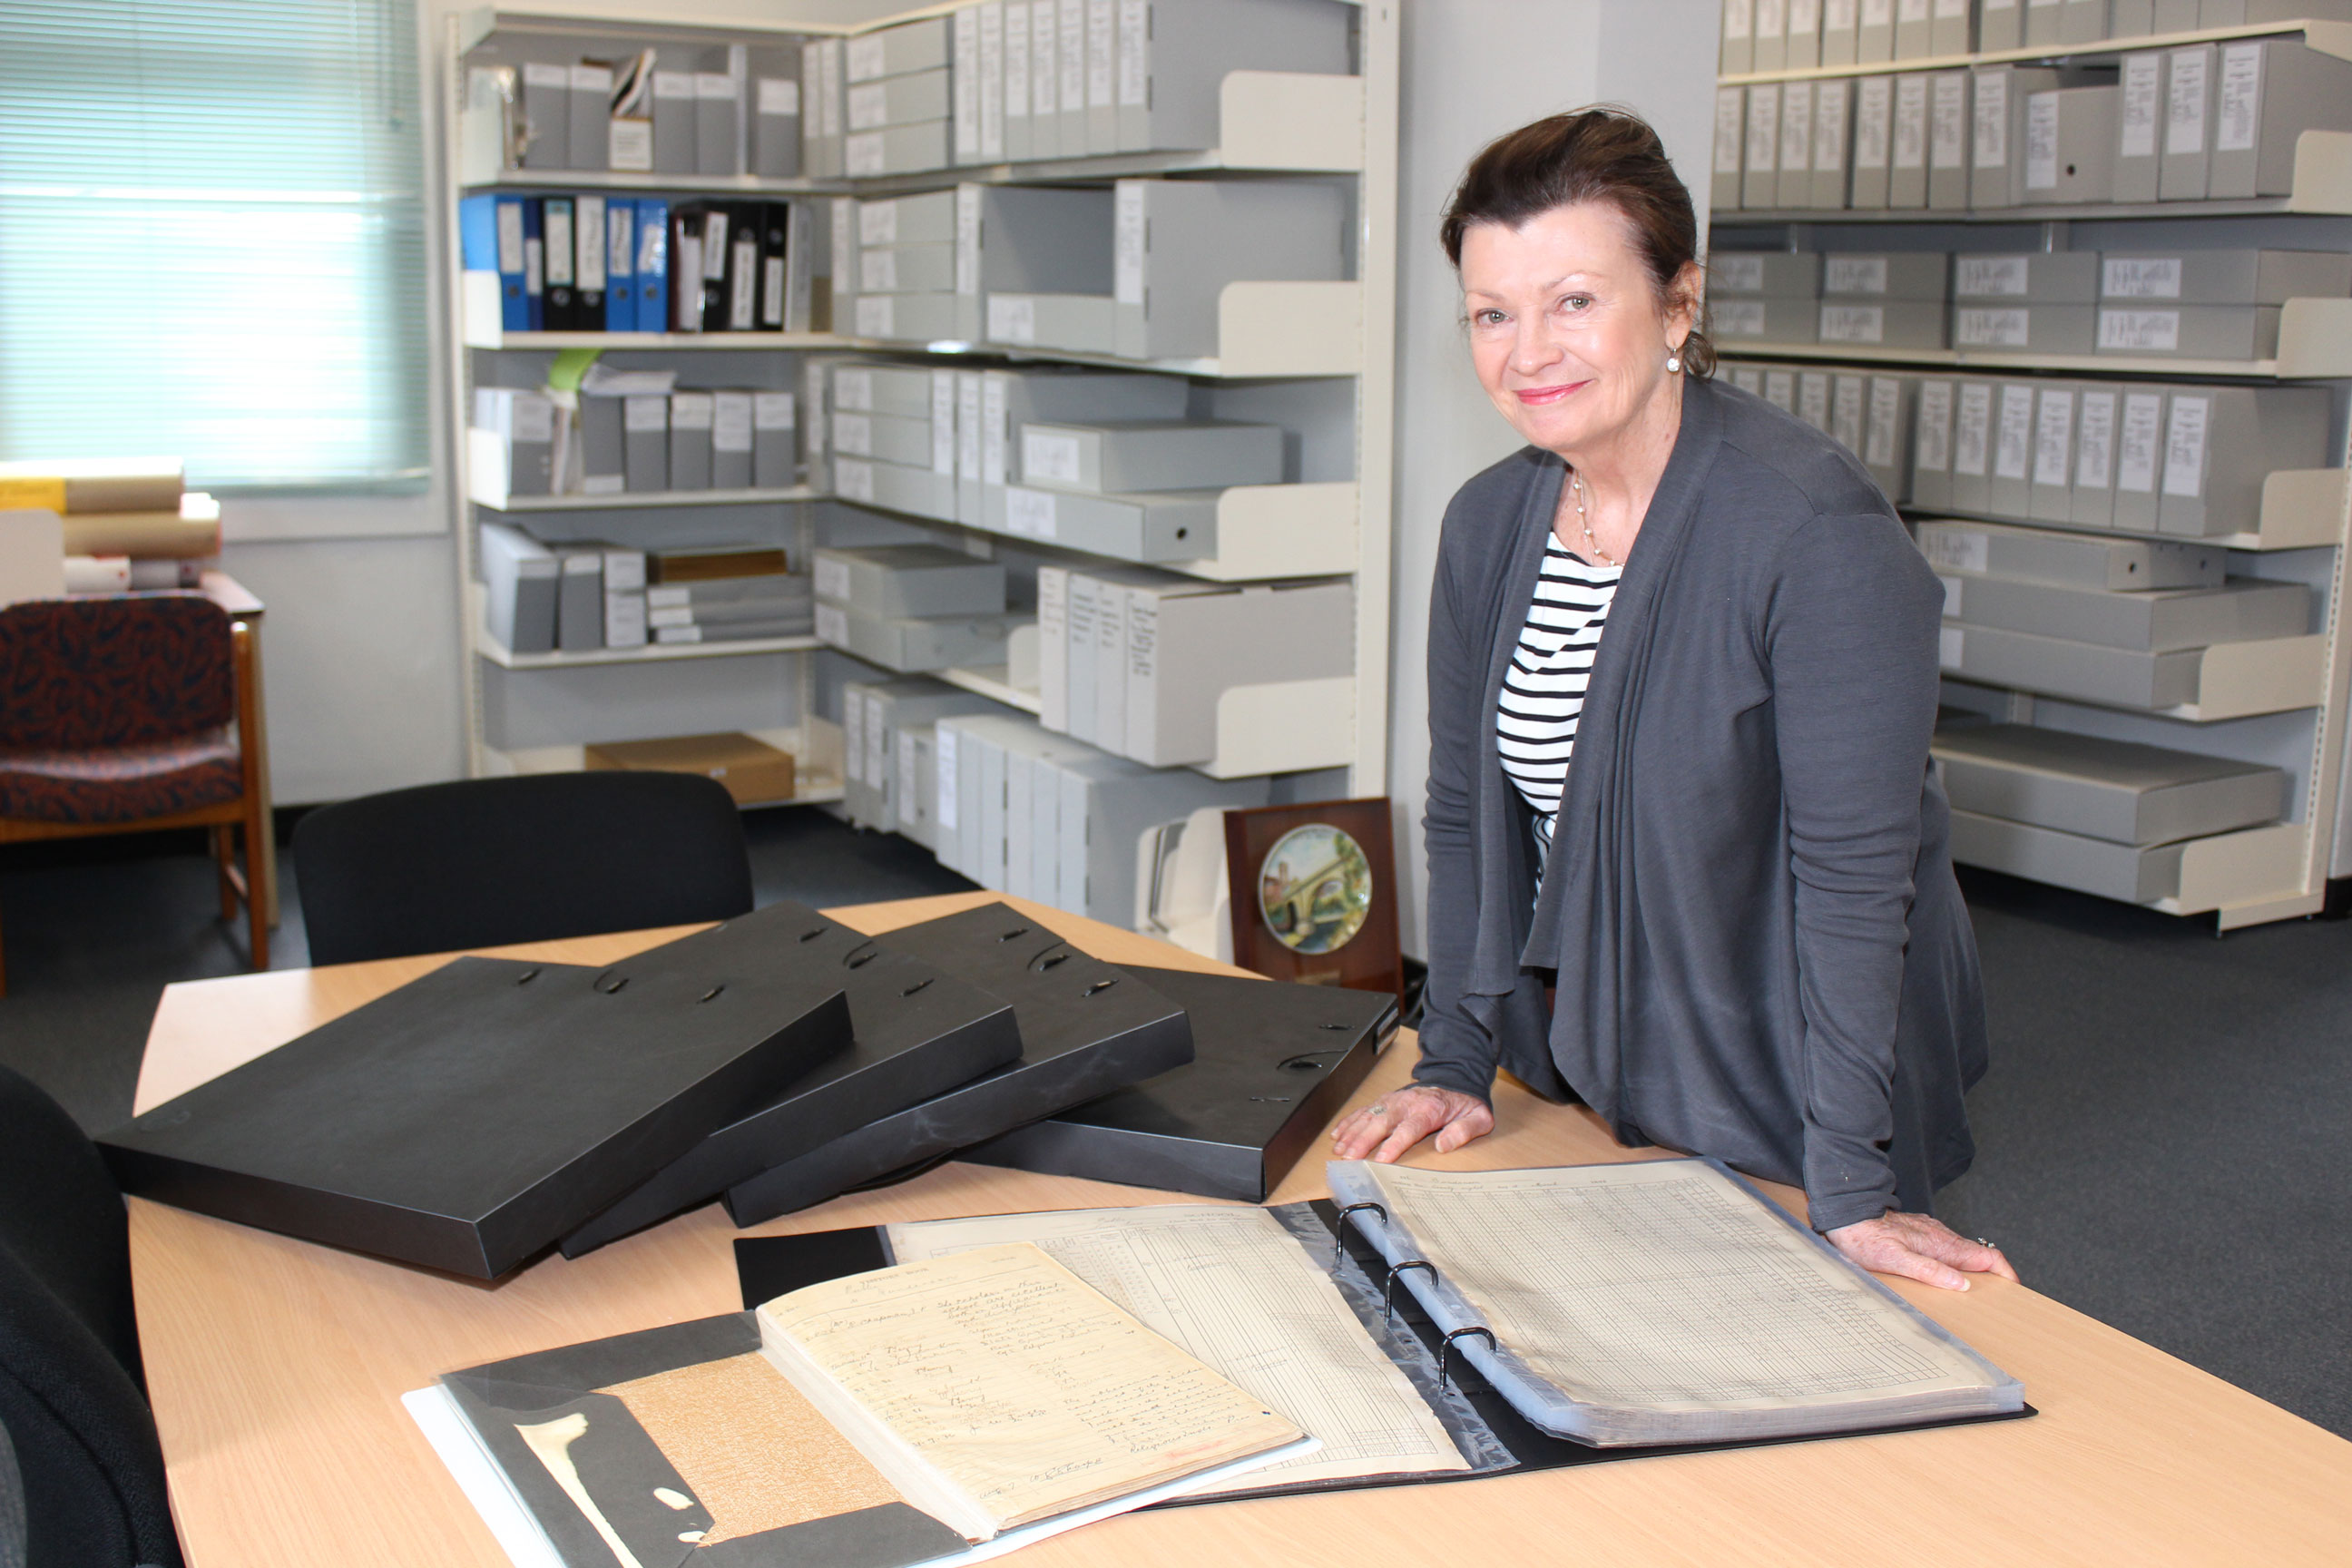 Archives Collection at Bowral Library